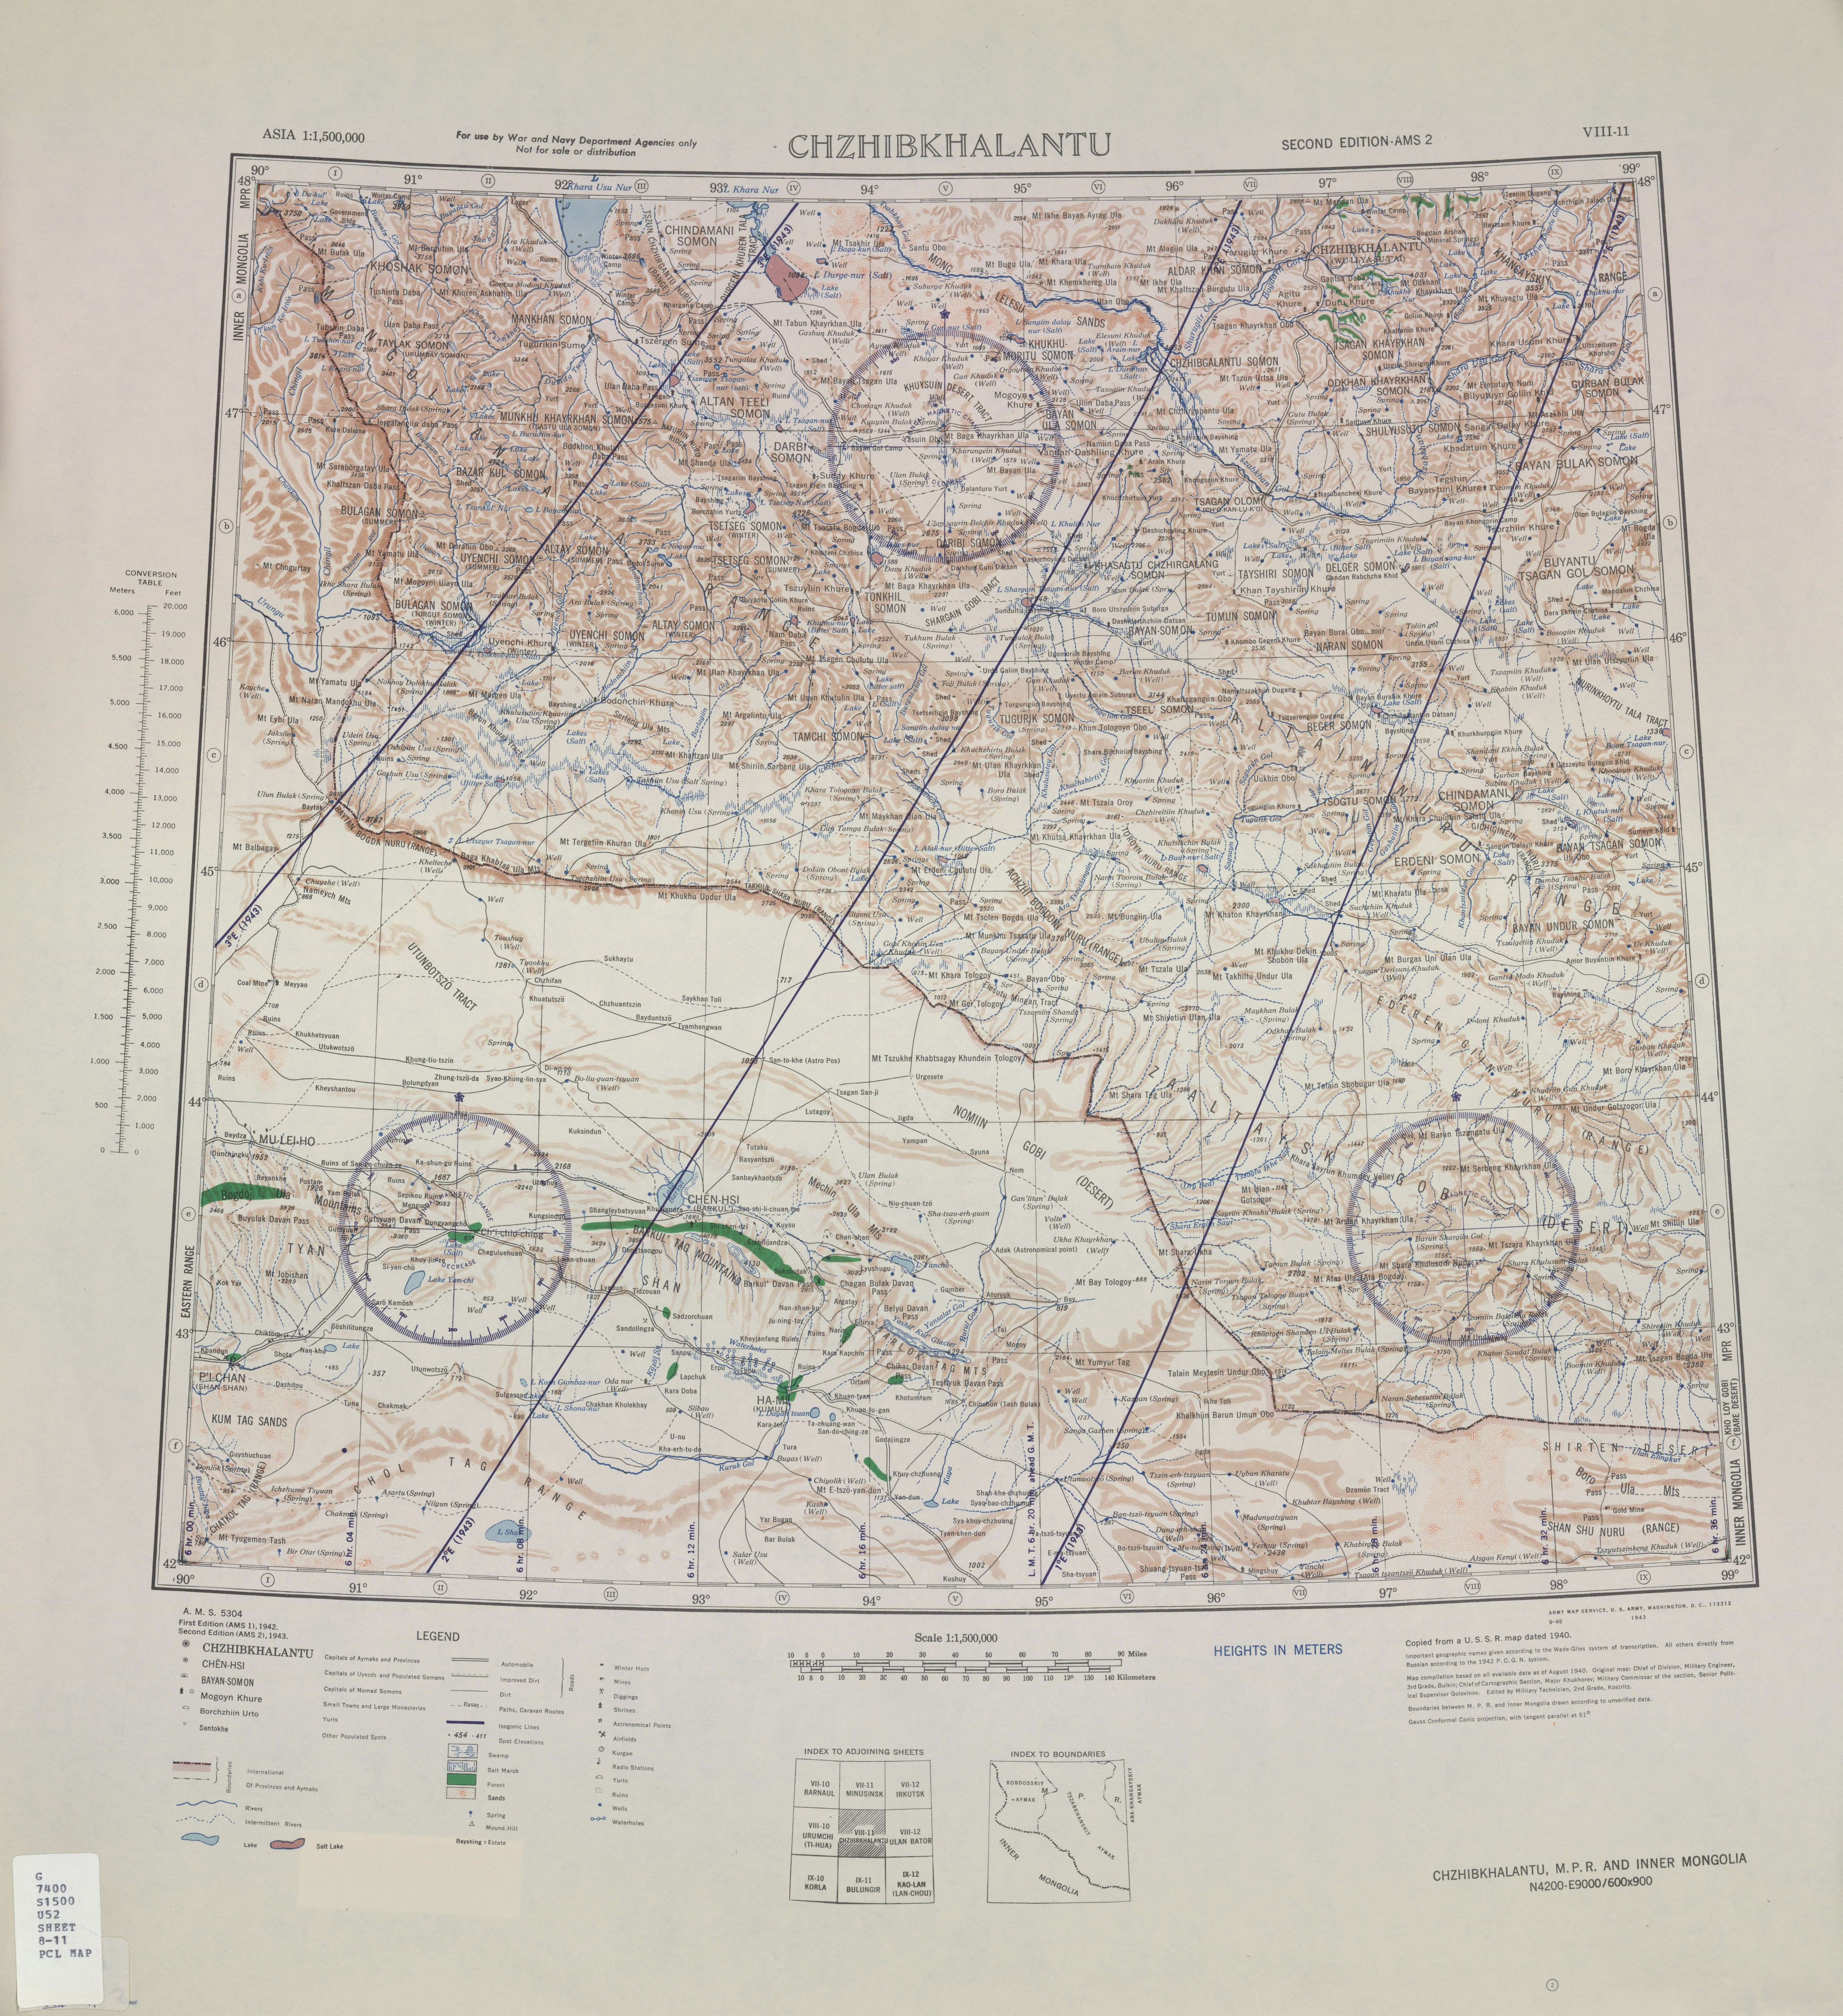 Asia AMS Topographic Maps PerryCastañeda Map Collection UT - Us government map of mongolia 1 500000